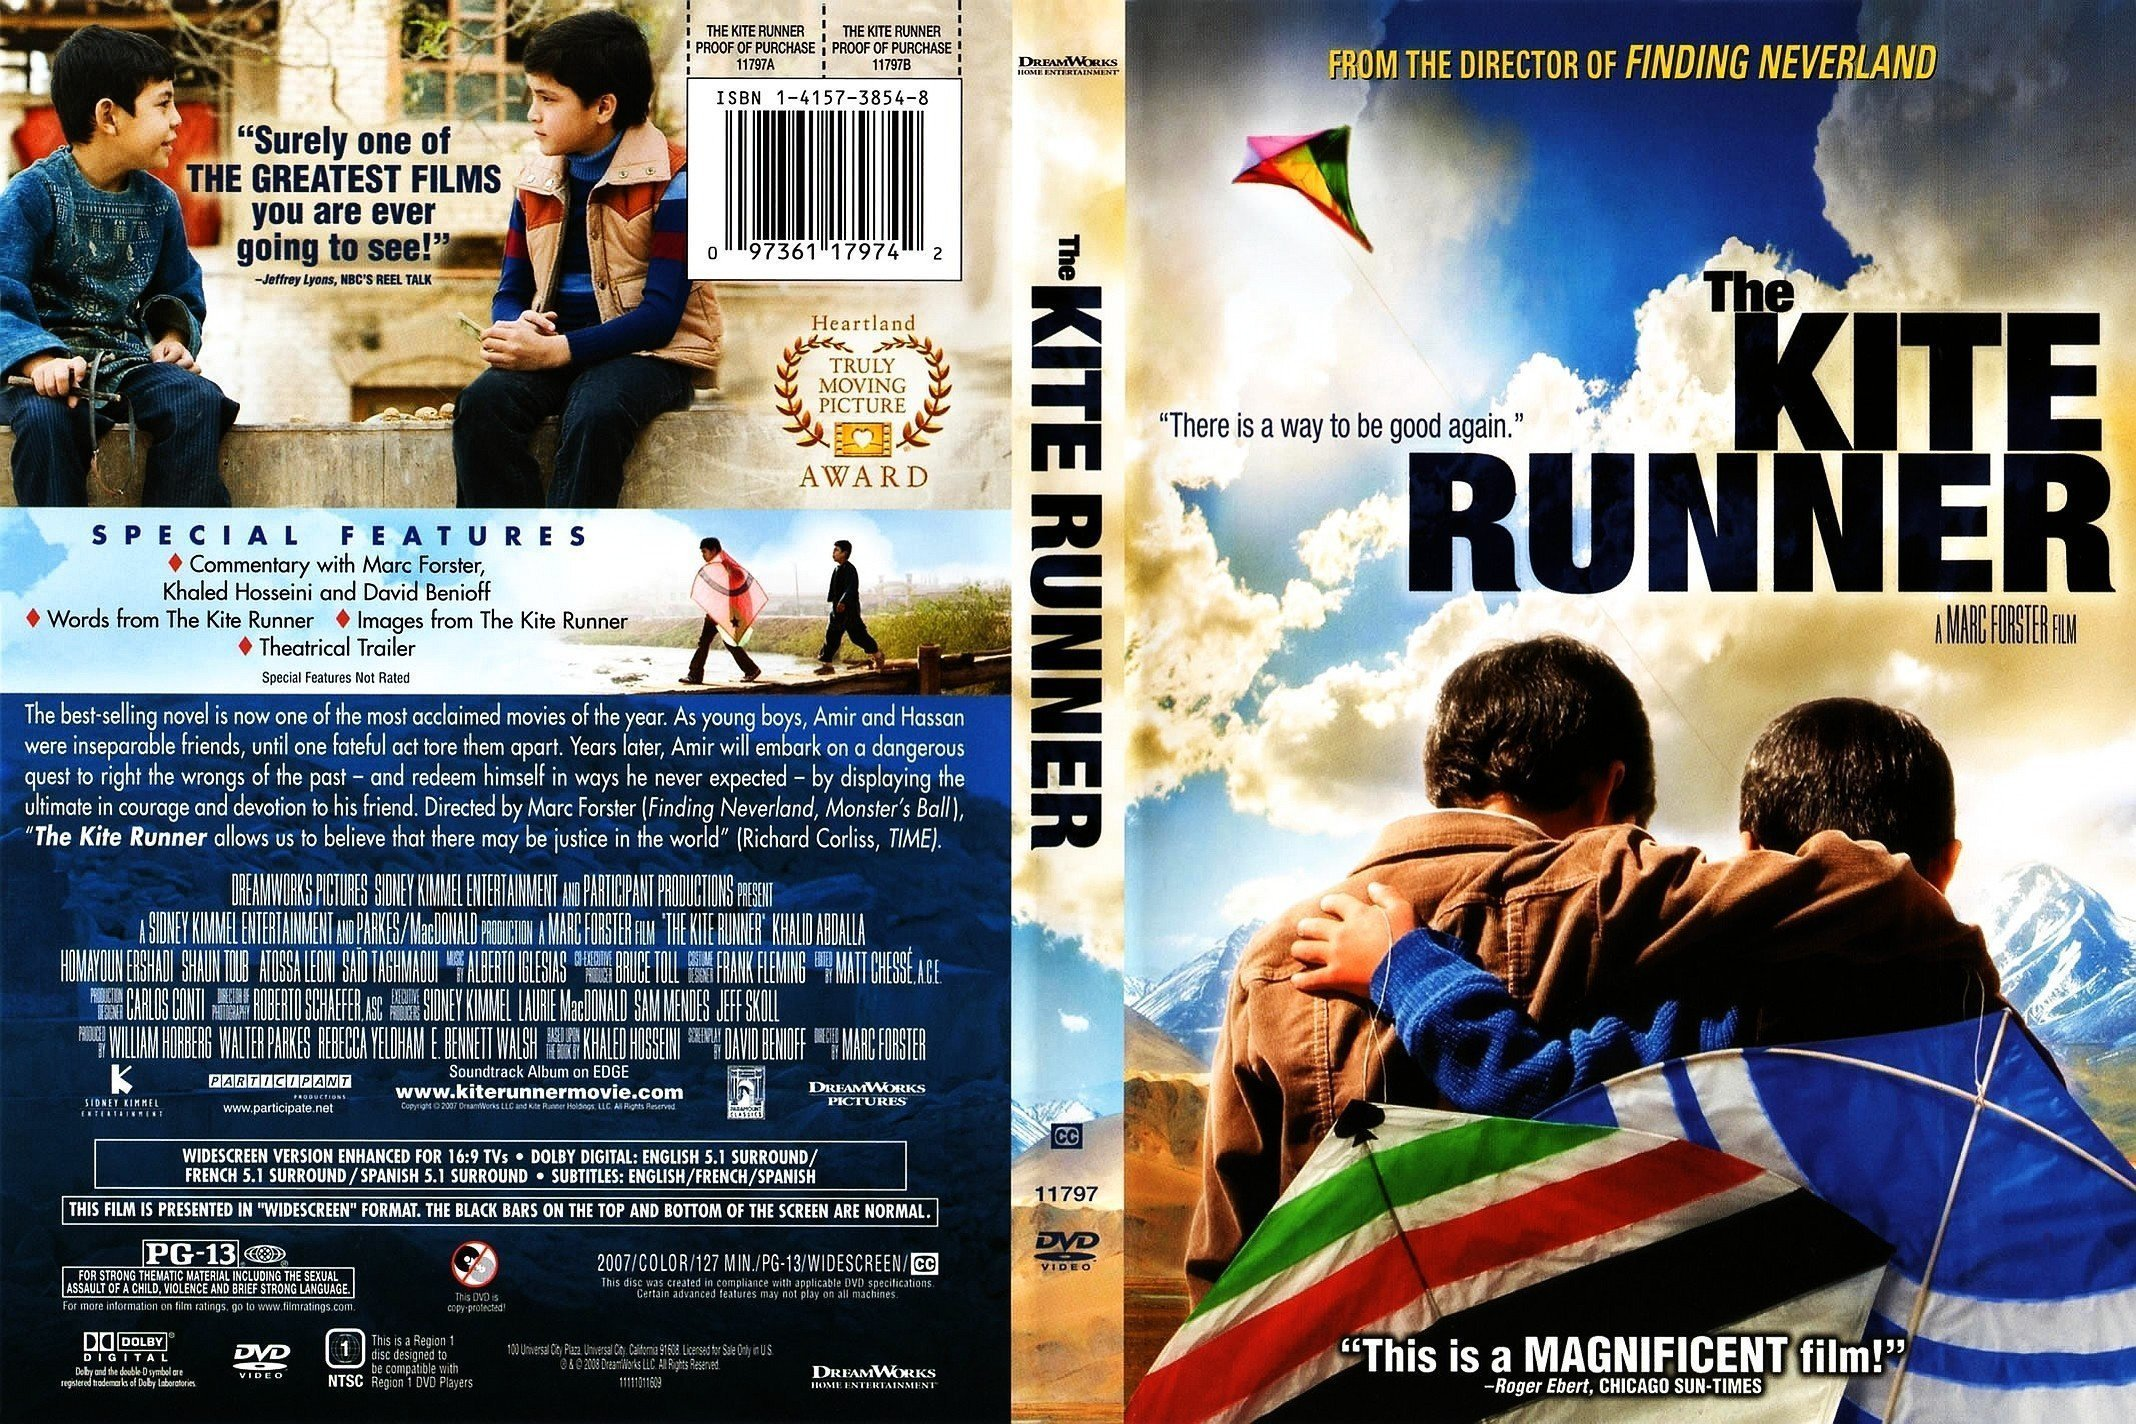 the quest for atonement in the kite runner a novel by khaled hosseini The kite runner and atonement analysis english literature essay these books are the kite runner and atonement in the novel atonement.